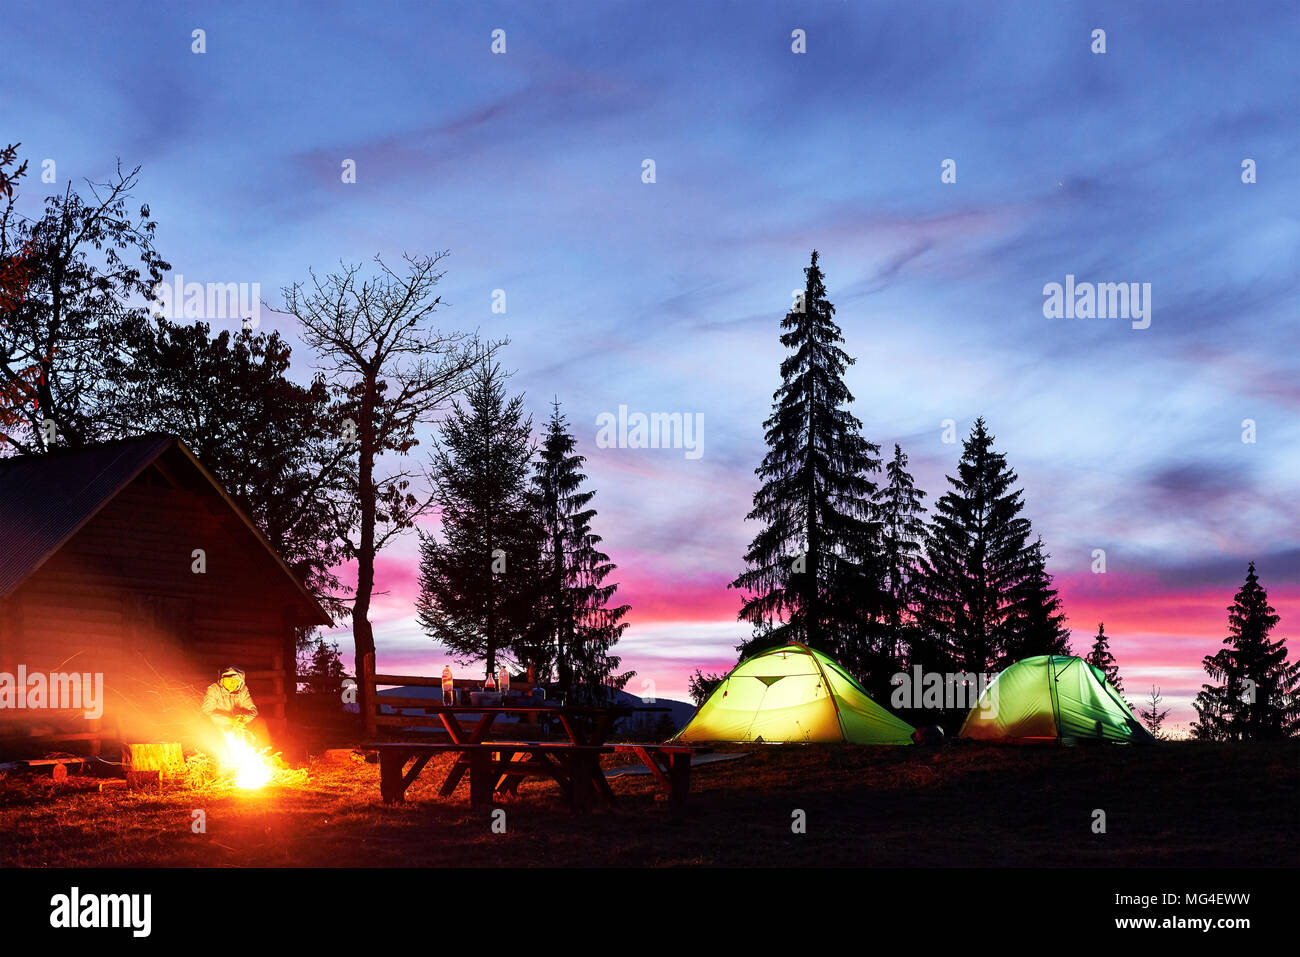 Night camping. Tourist have a rest at a campfire near illuminated tent and wooden house under amazing night sky full of stars and milky way Stock Photo